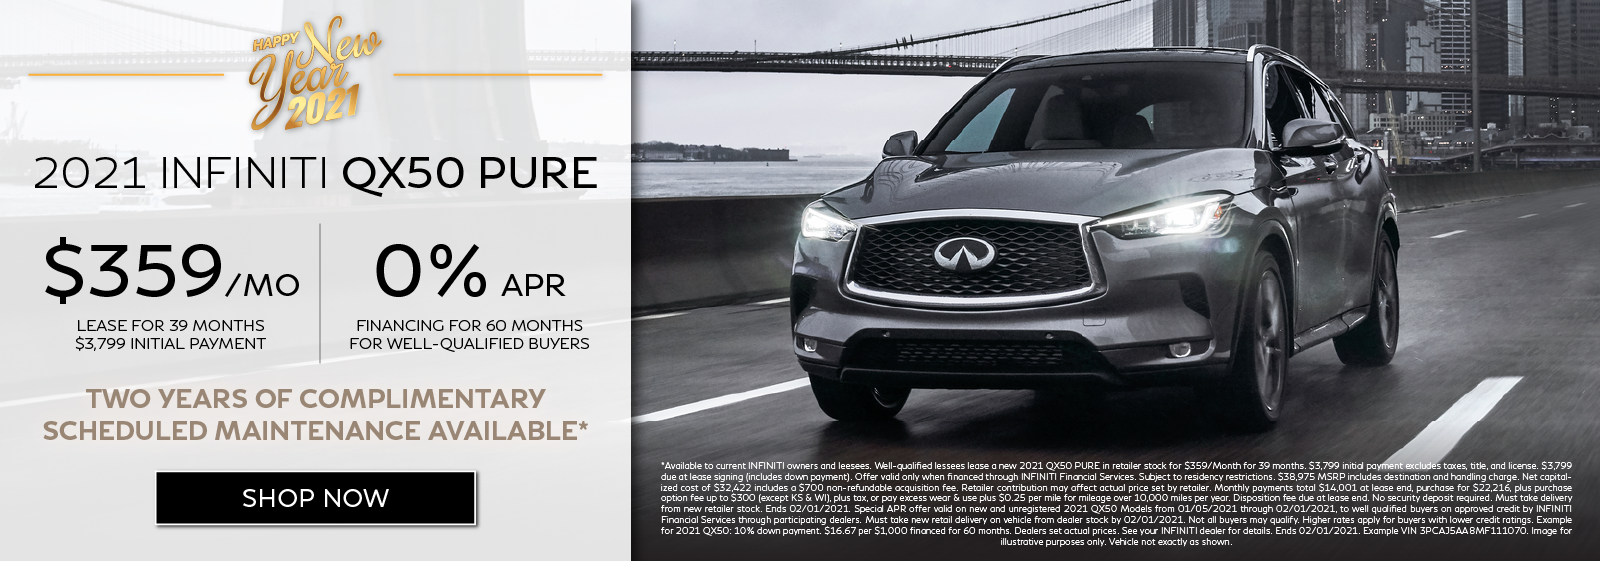 Well-qualified customers can lease a new 2021 QX50 PURE for $359 per month for 39 months OR get 0% APR financing for 60 months plus get two years of complimentary scheduled maintenance.* Click to shop now.